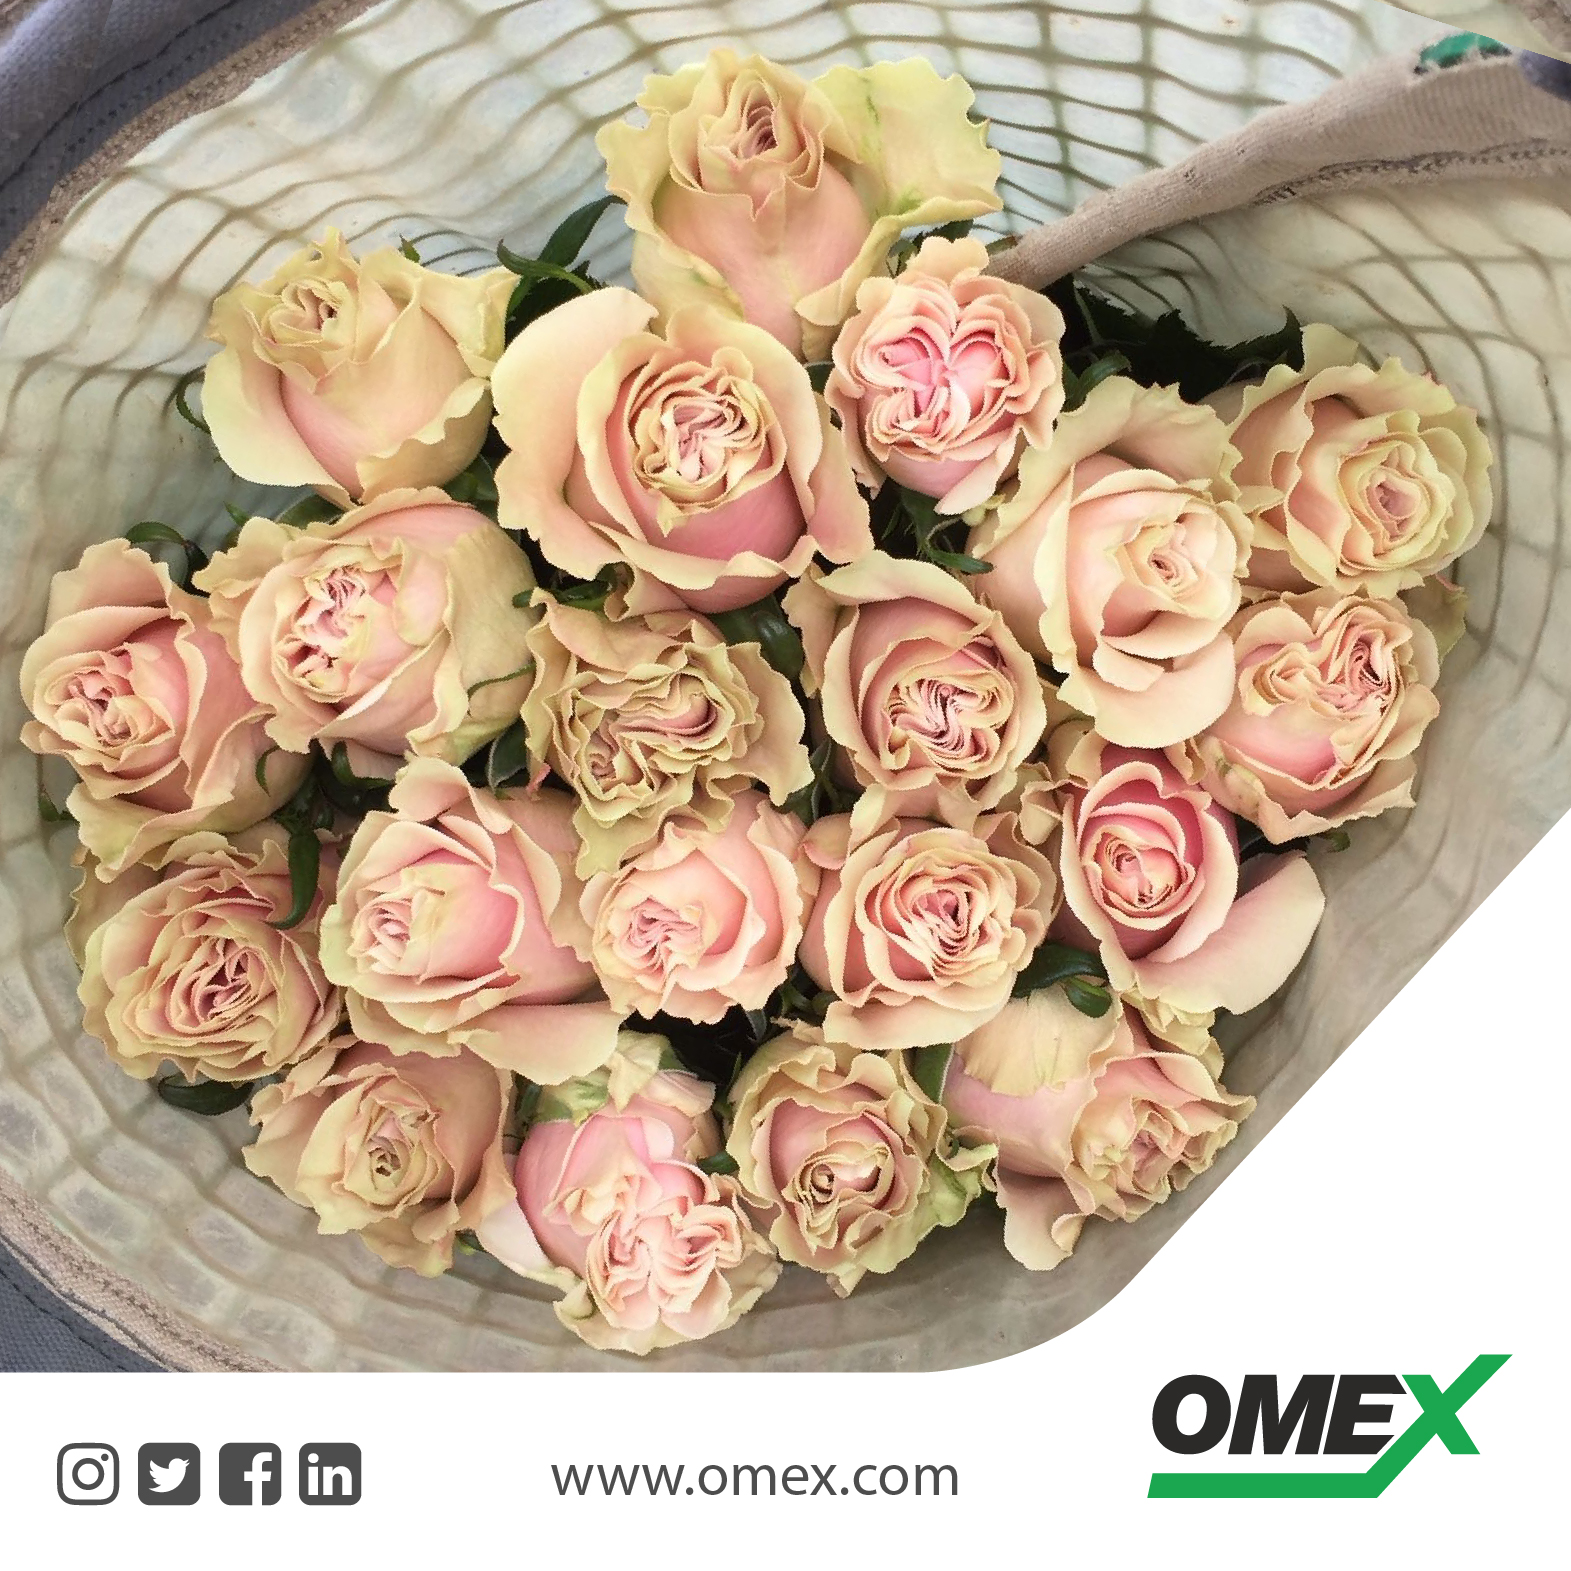 How to grow the best quality roses ….